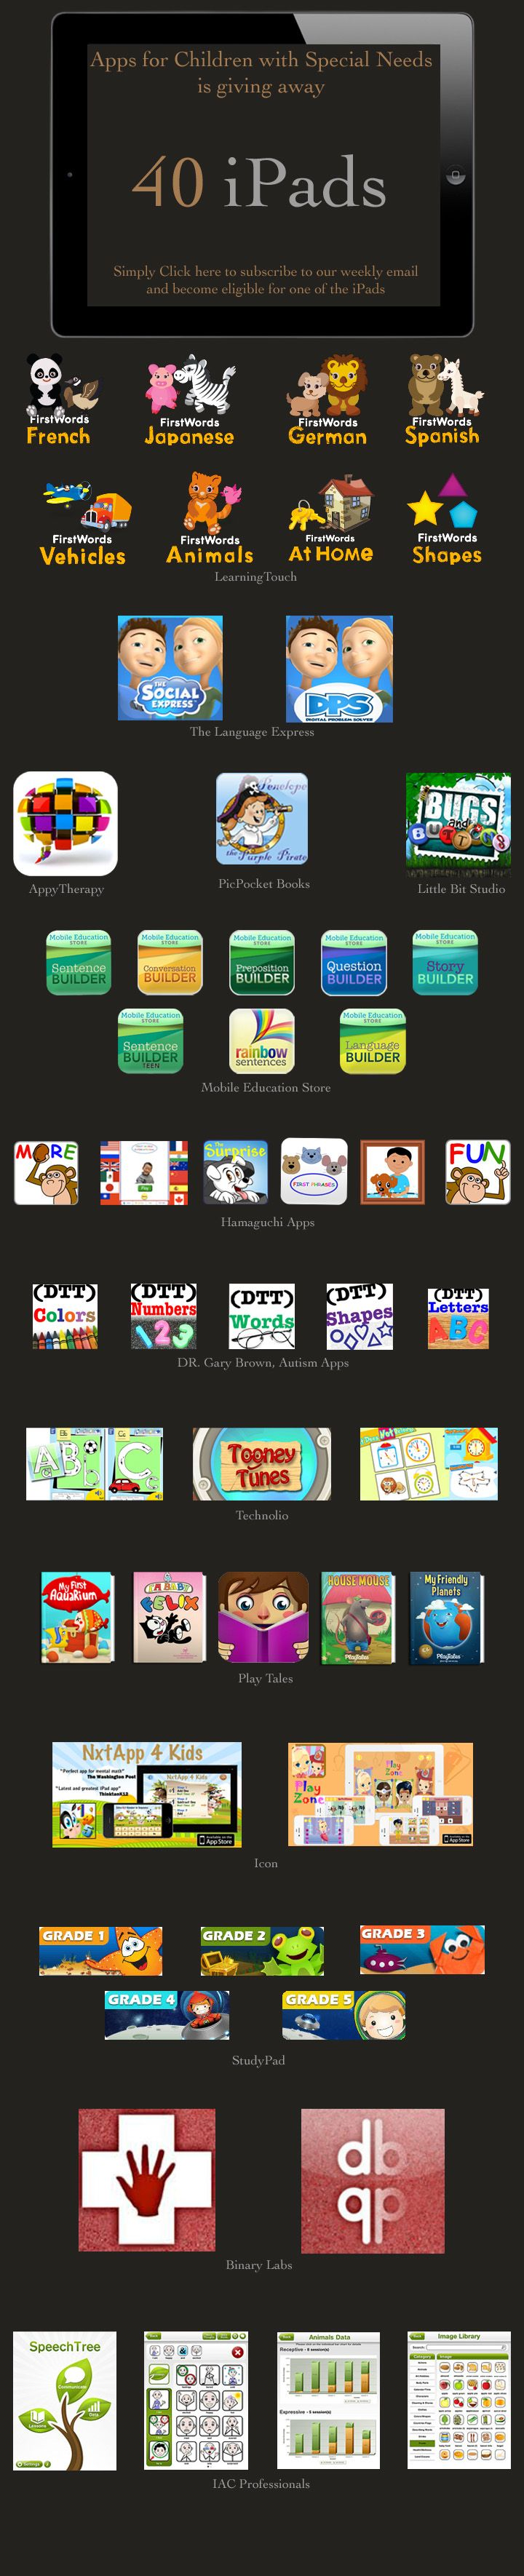 Schedule app for ipad autism giveaways